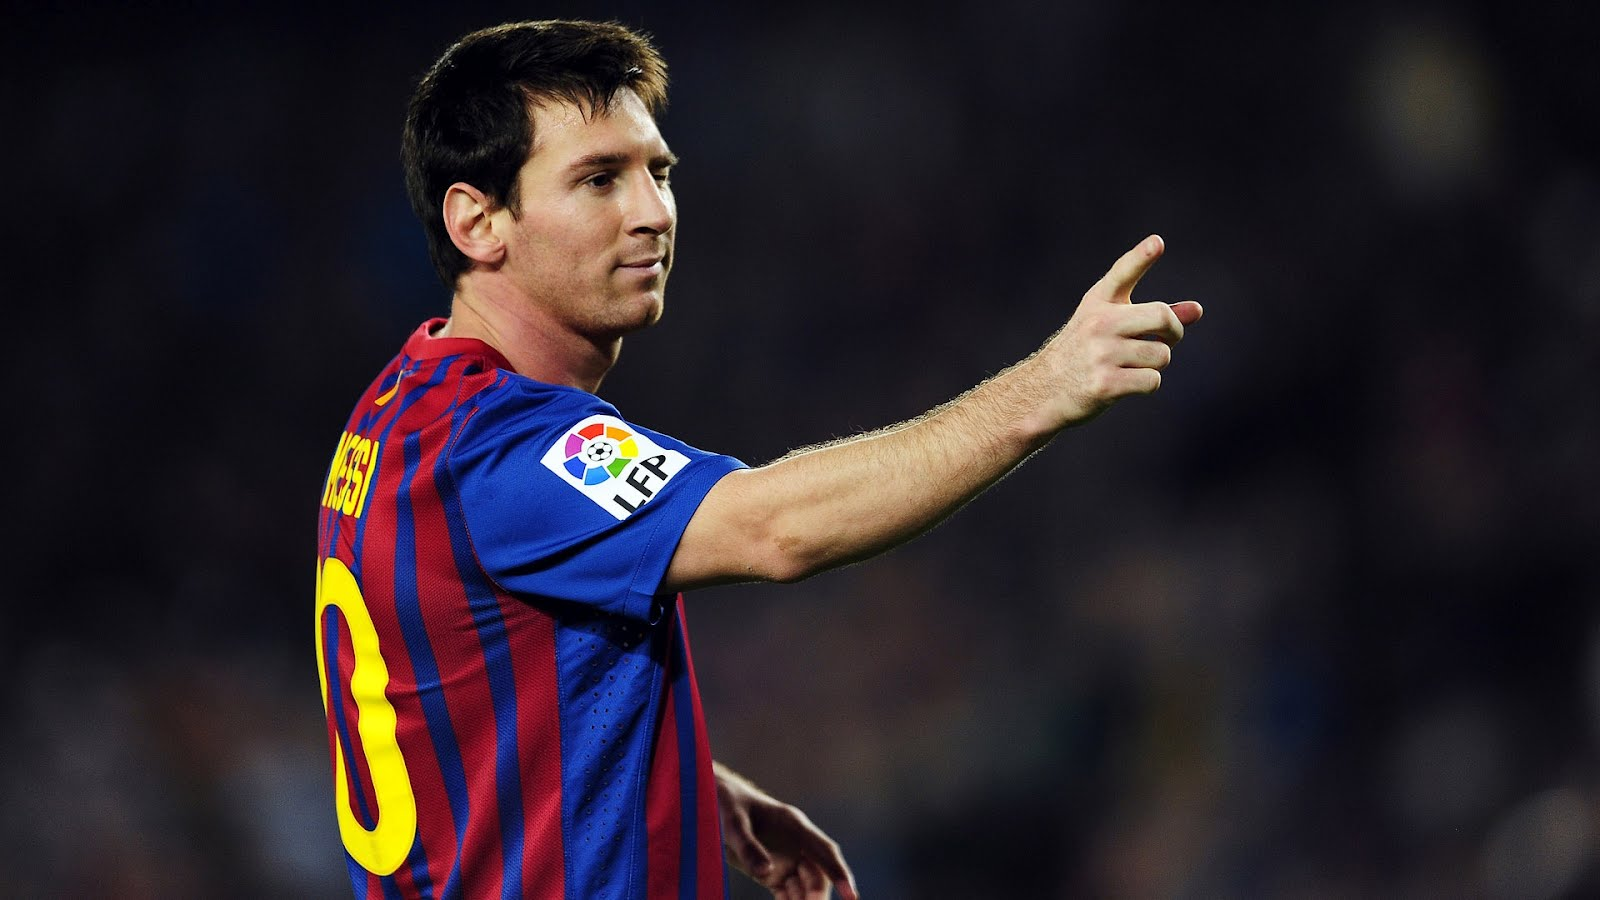 Lionel Messi Wallpaper 10 11120 Hd Wallpapers in Football   Imagesci 1600x900